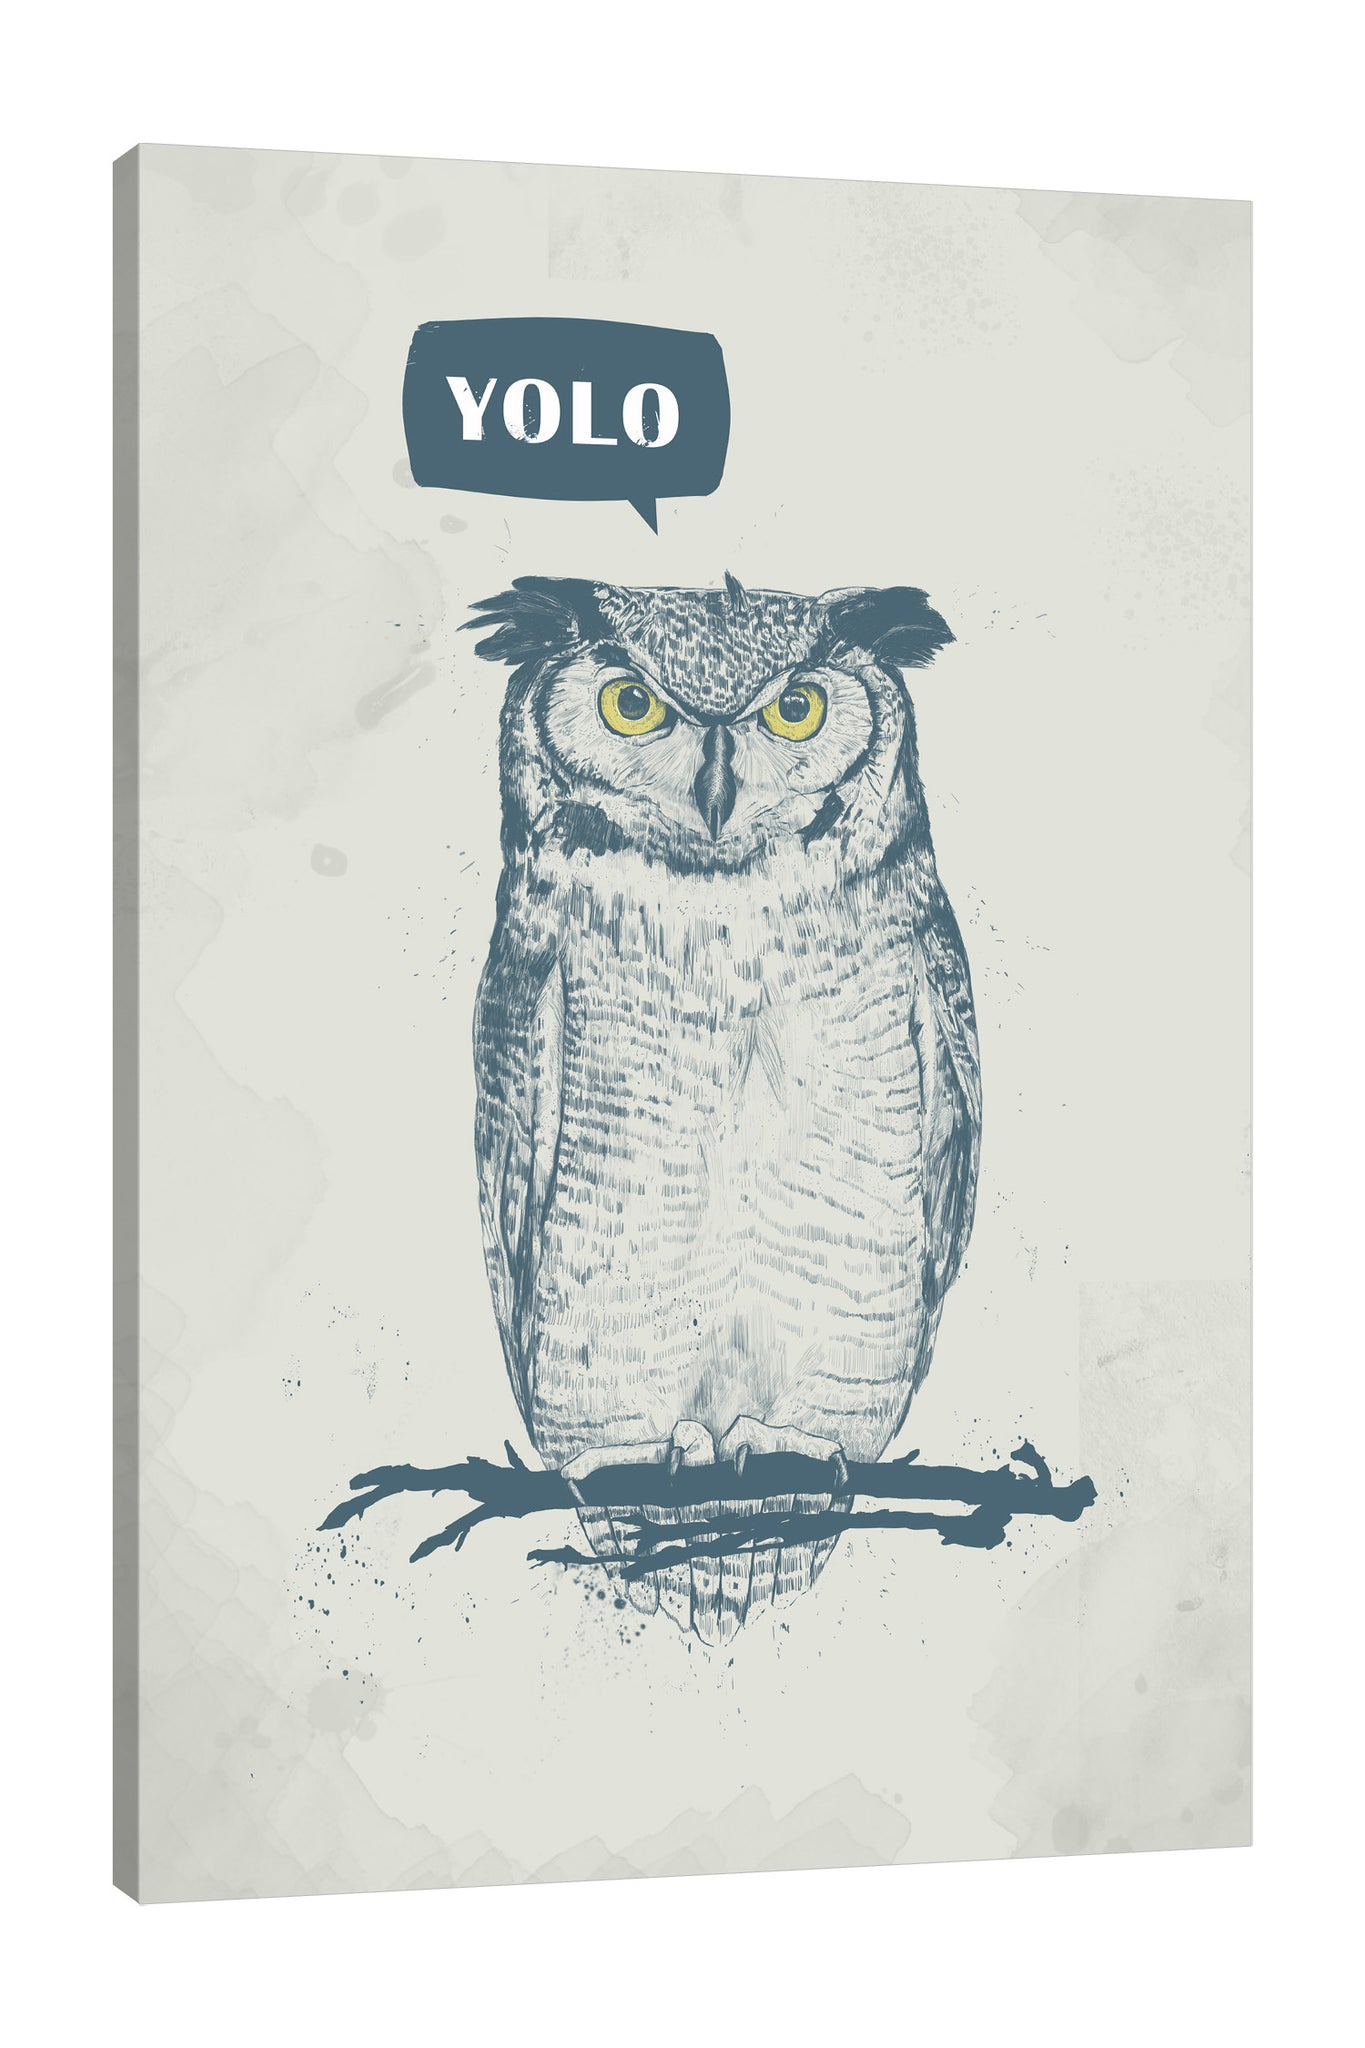 Balazs-Solti,Modern & Contemporary,Animals,animals,animal,owl,owls,yolo,words,blue,gray,grey,words and phrases,yellow,birds,bird,Rose Purple,Charcoal Gray,Red,Purple,Rose Orange,White,Gray